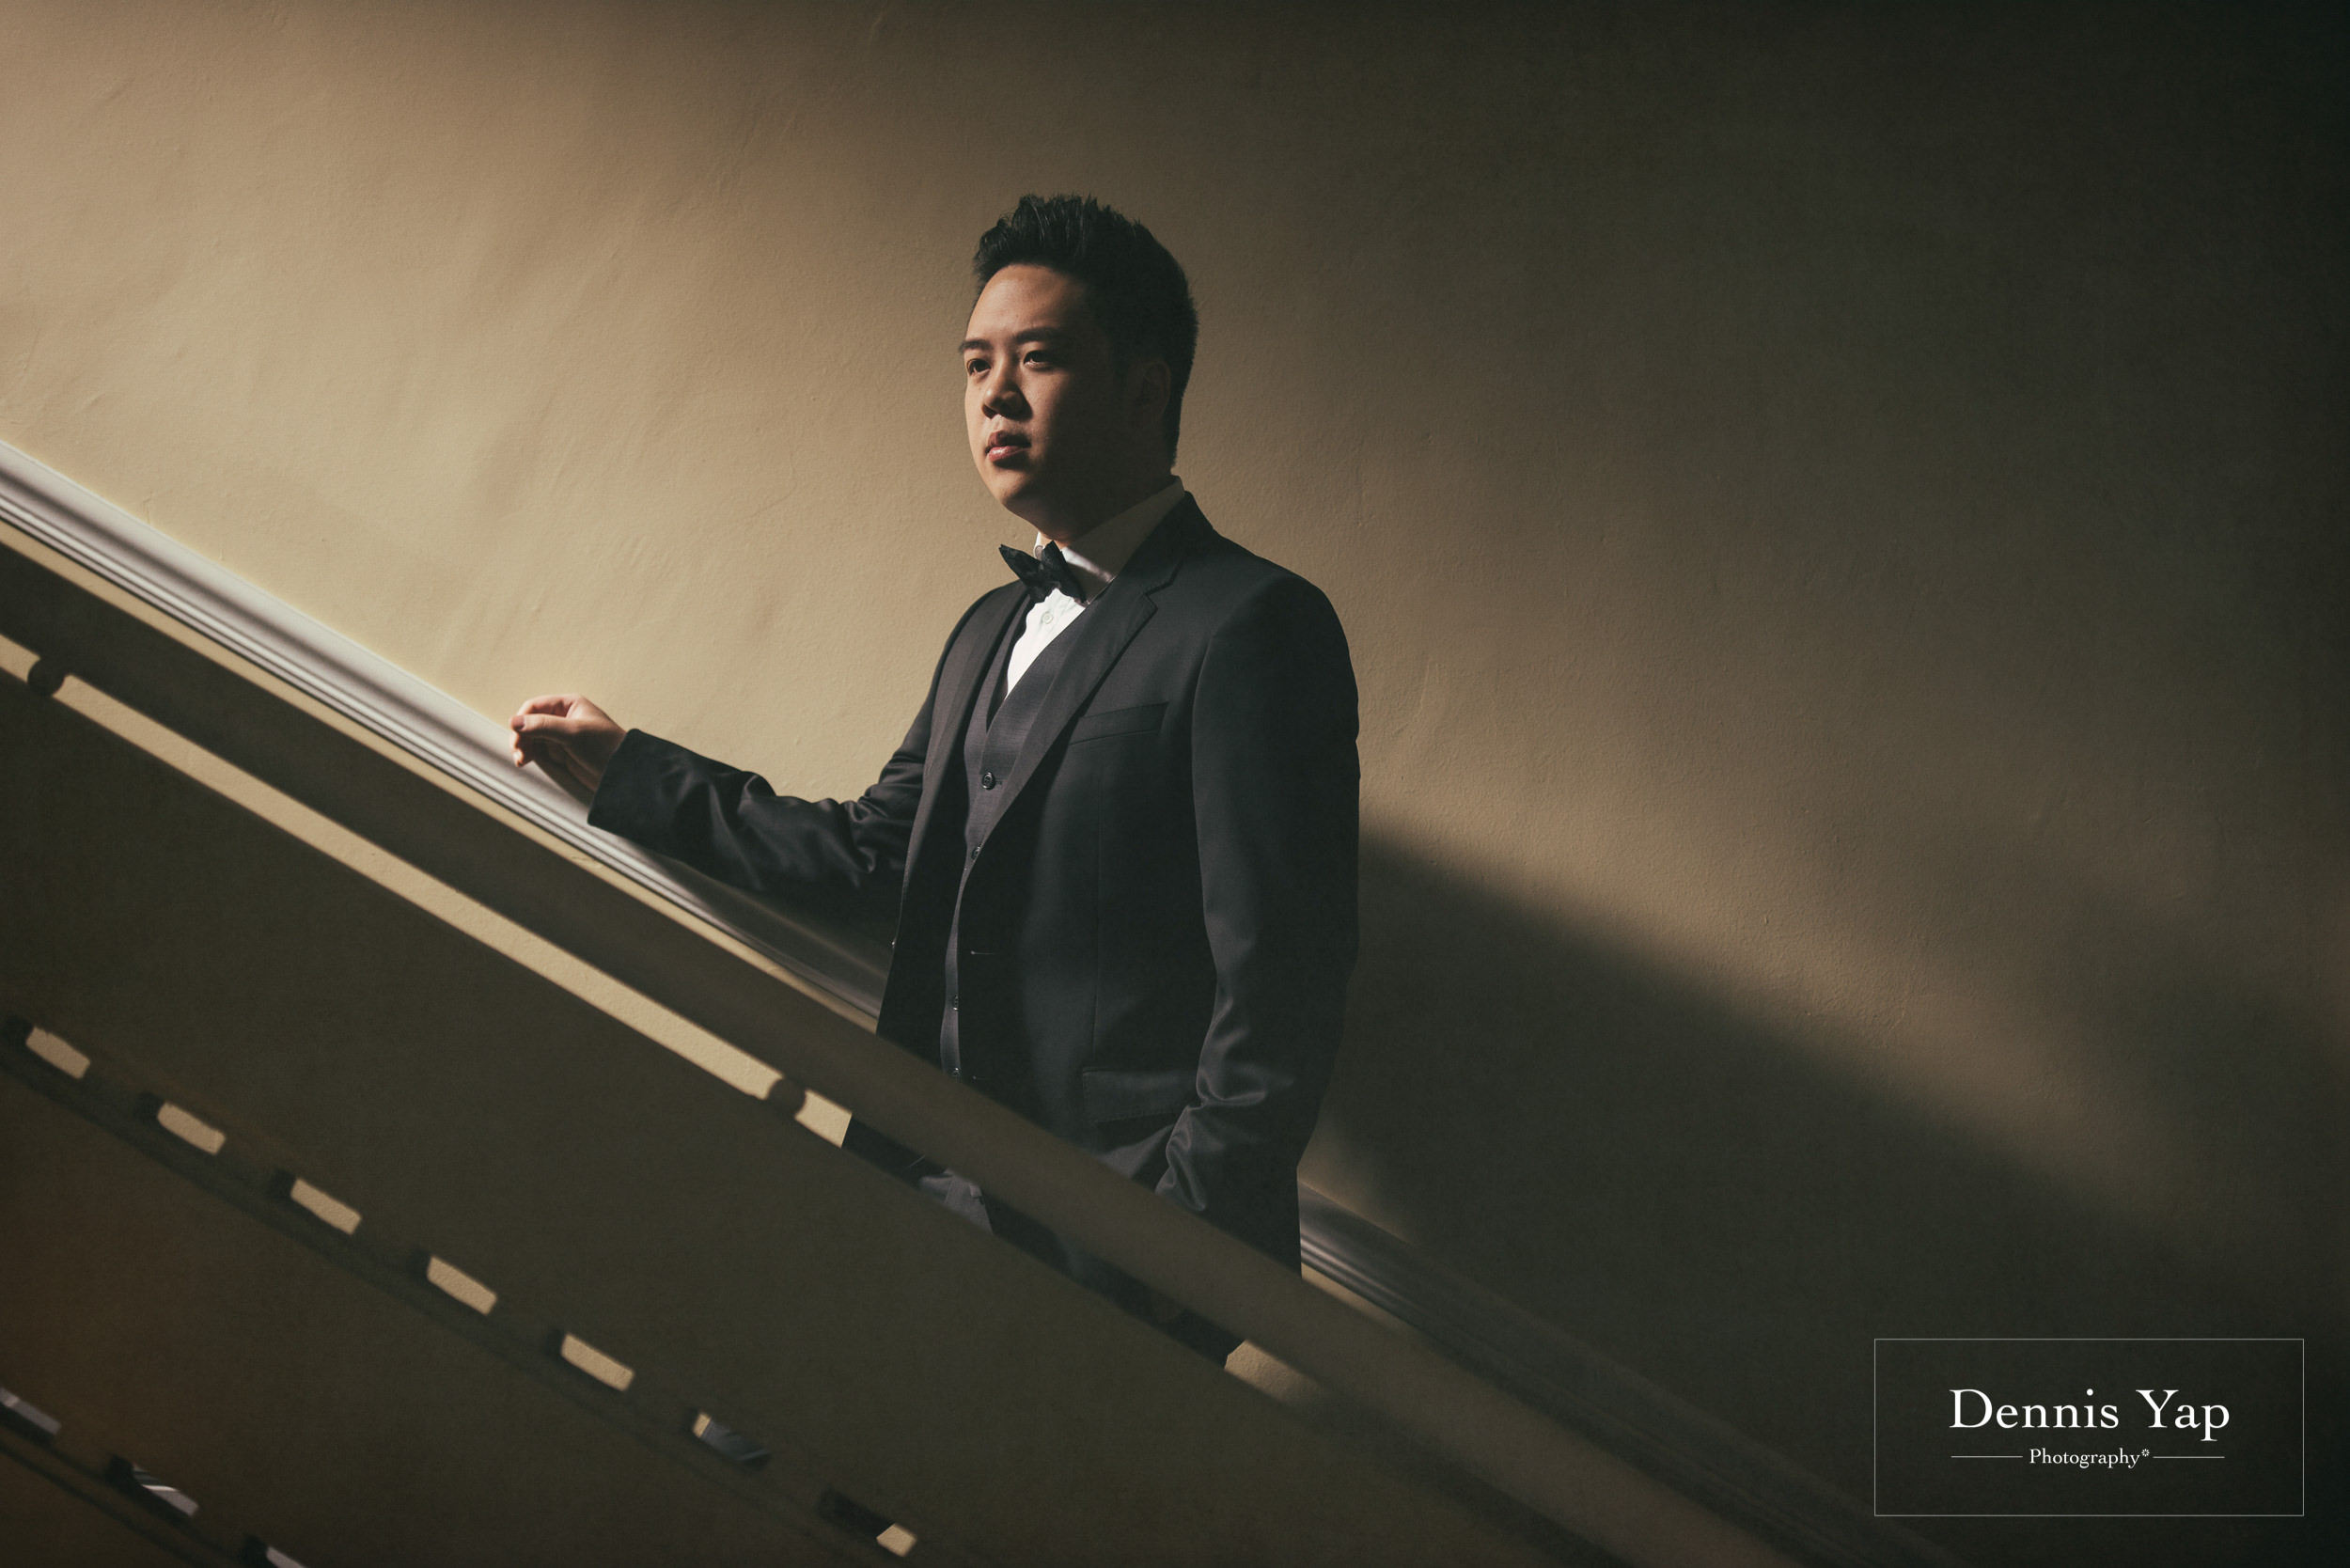 ivan constance pre wedding majestic hotel dennis yap photography luxury style calm serious-3.jpg